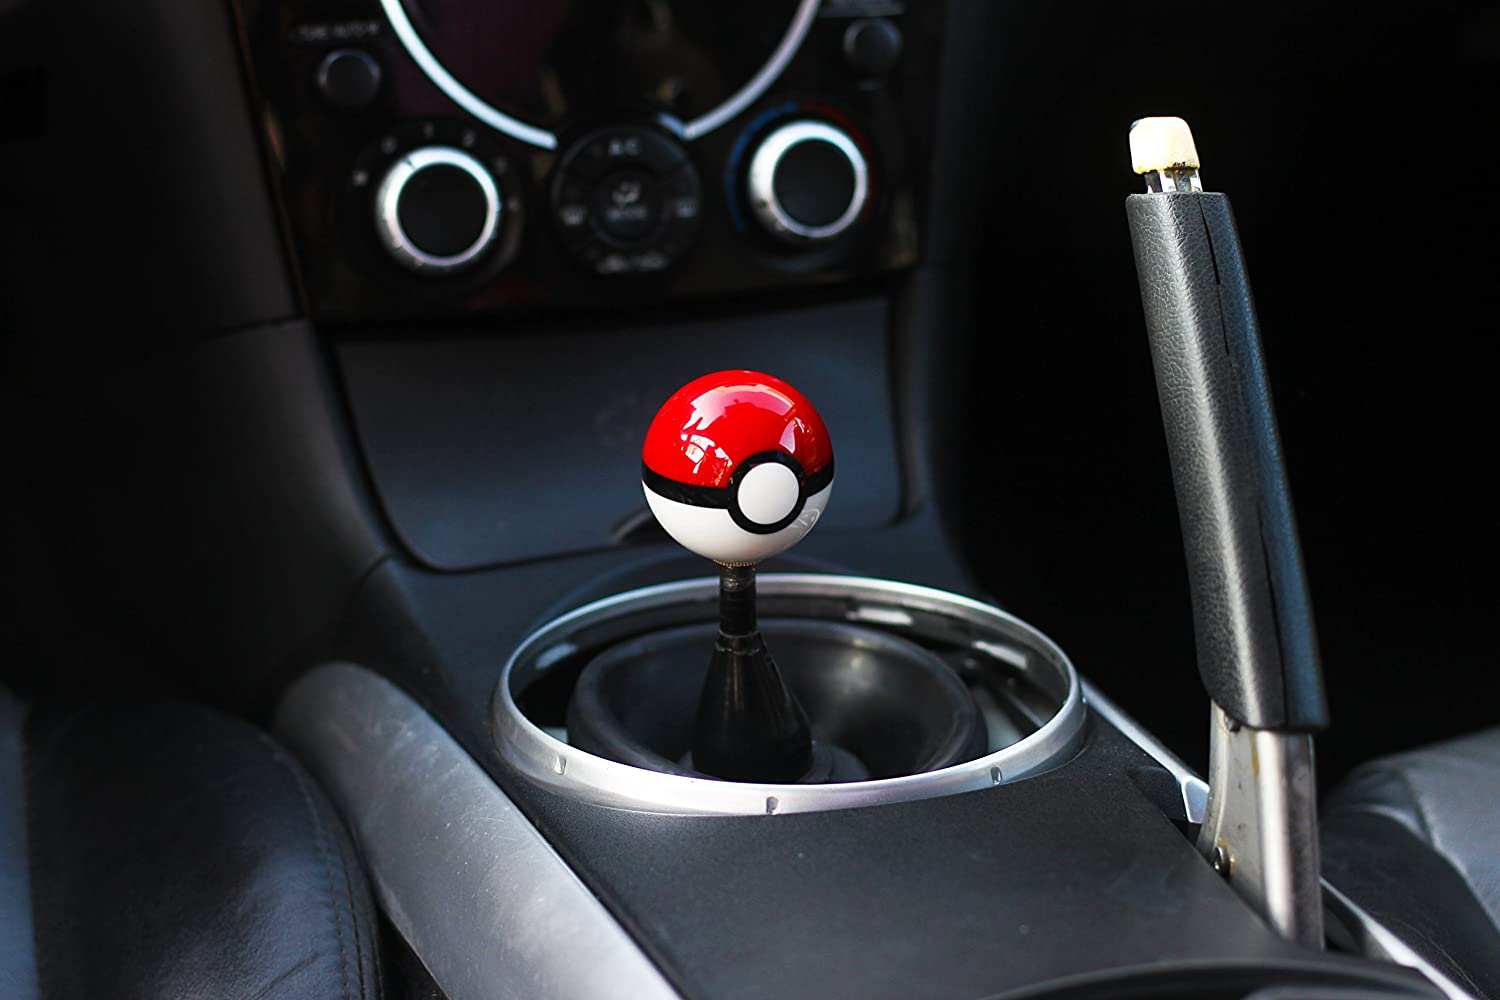 Amazon.com: Kei Project Pokemon Pokeball Round Shift Knob Available In  8x1.25 10x1.25 10x1.50 12x1.25 (10x1.25): Home Improvement